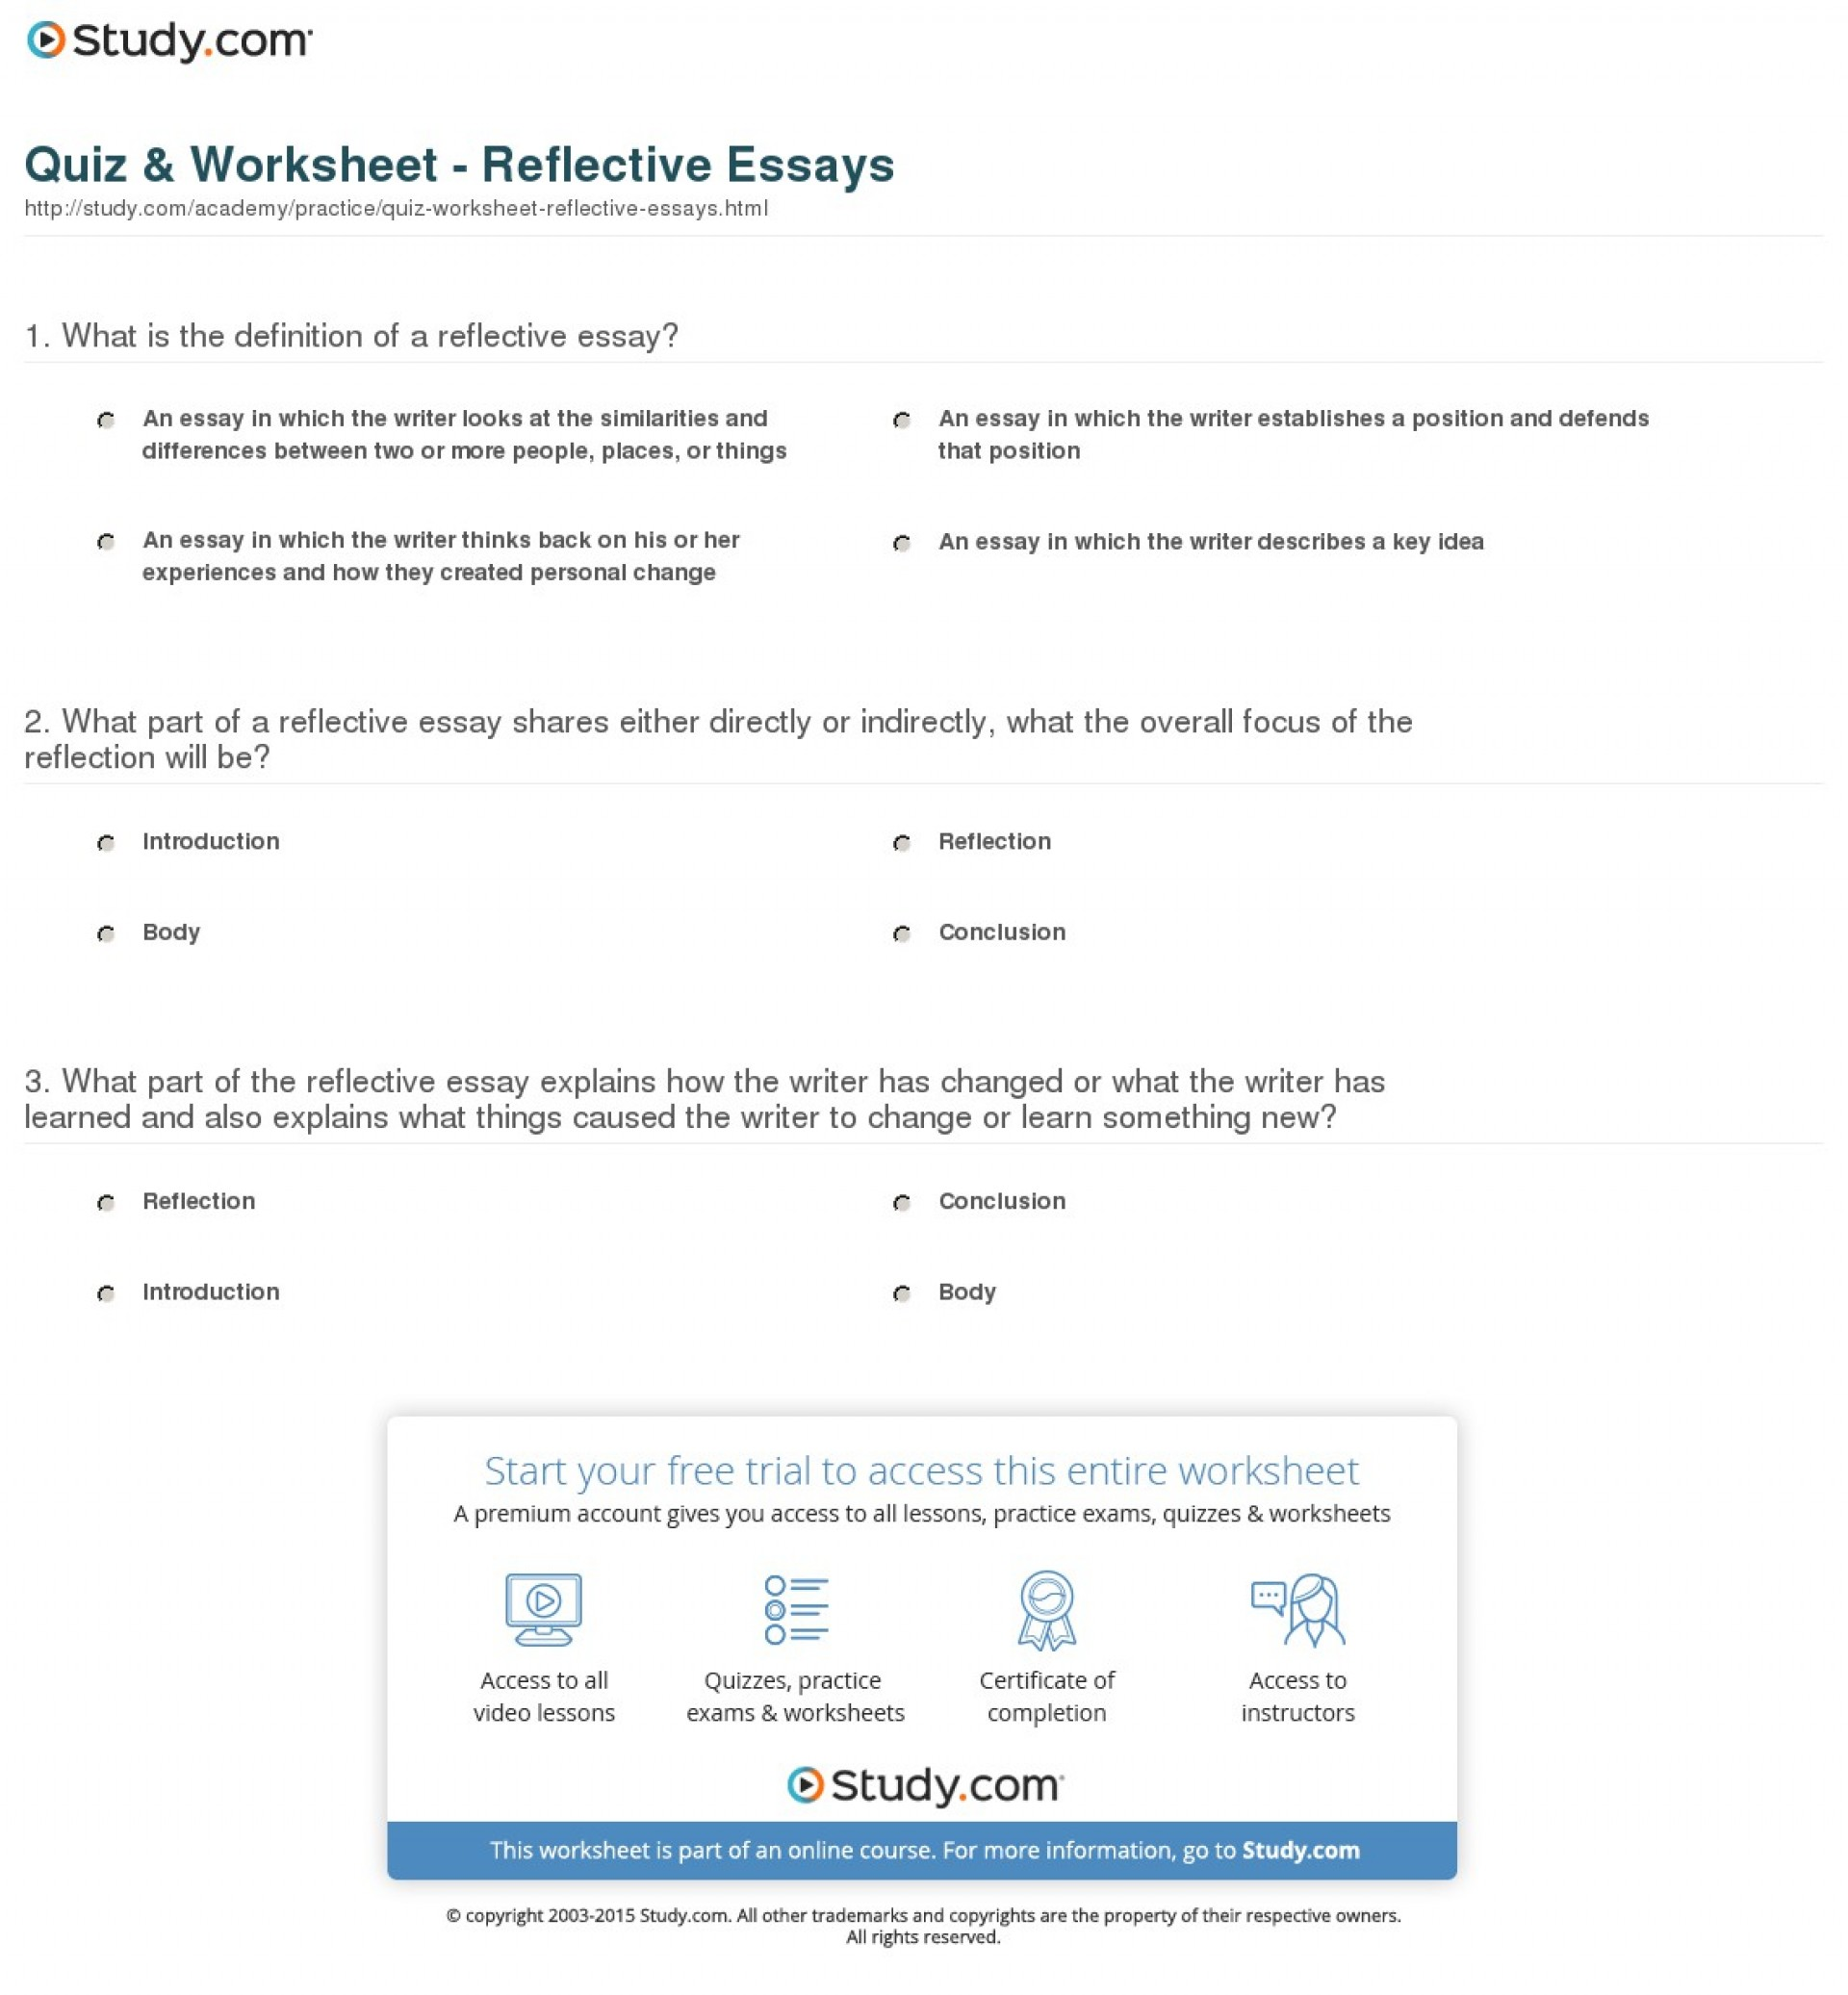 005 Essay Example What Is Reflective Quiz Worksheet Remarkable A Ppt Self 1920